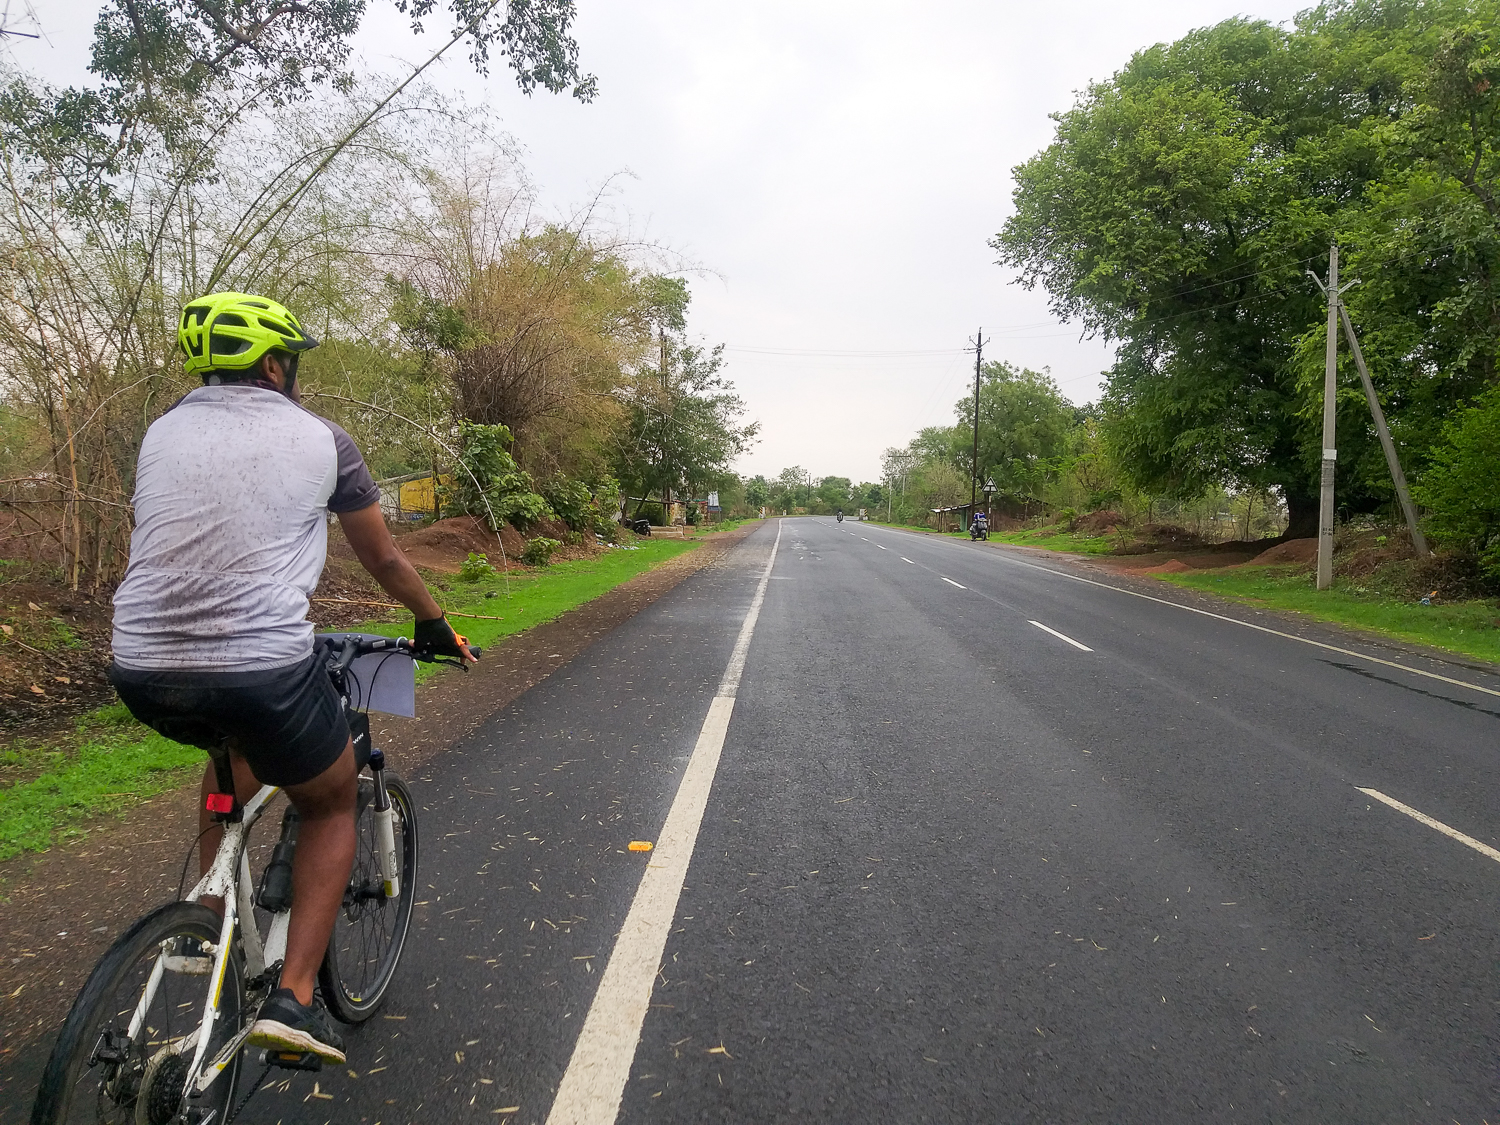 Cycling in Central India